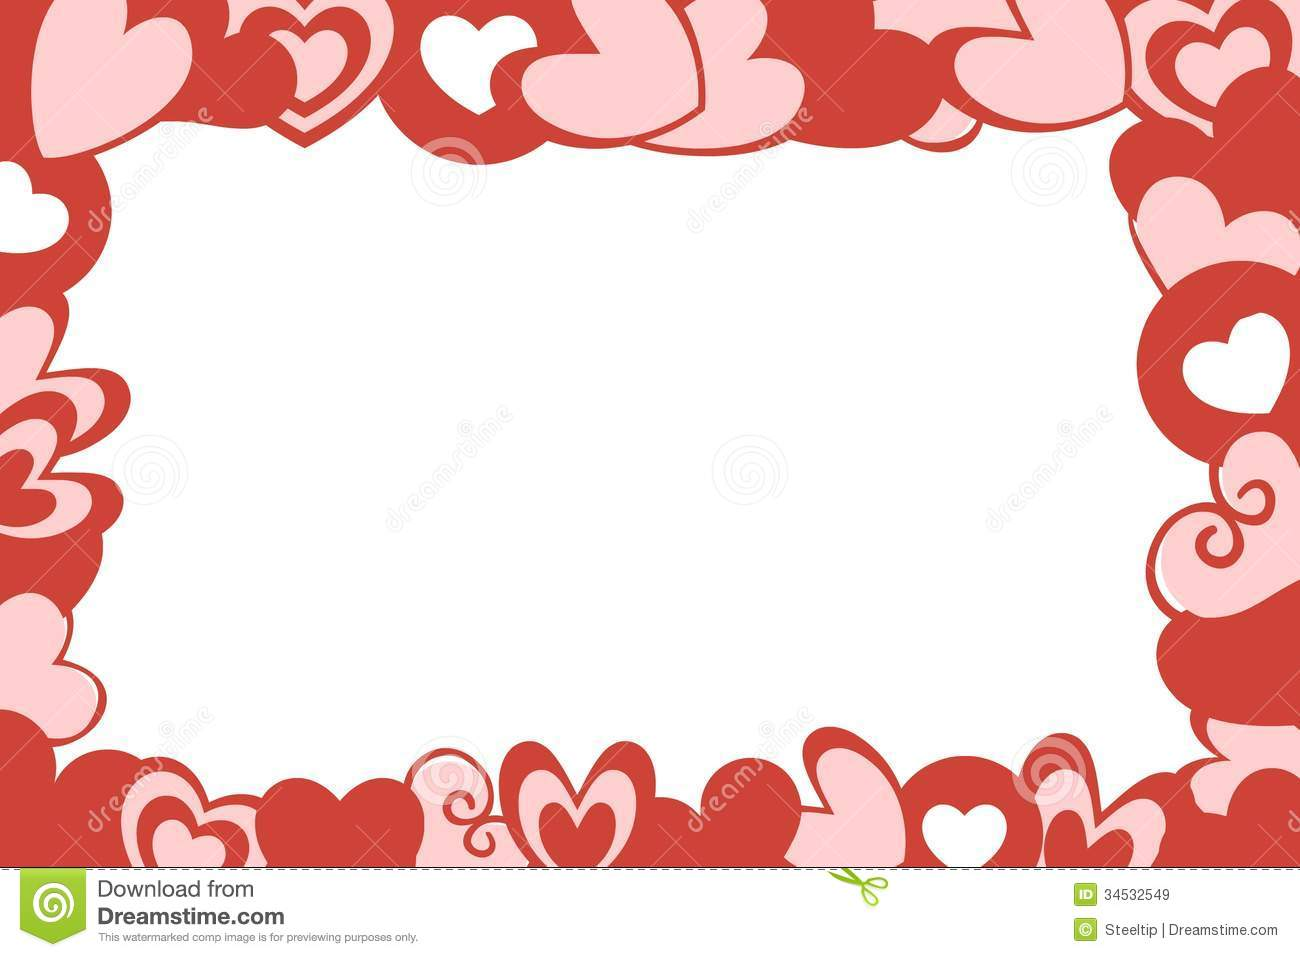 Christmas Falling Snow Wallpaper Note 3 Valentine Hearts Frame White Background Stock Illustration